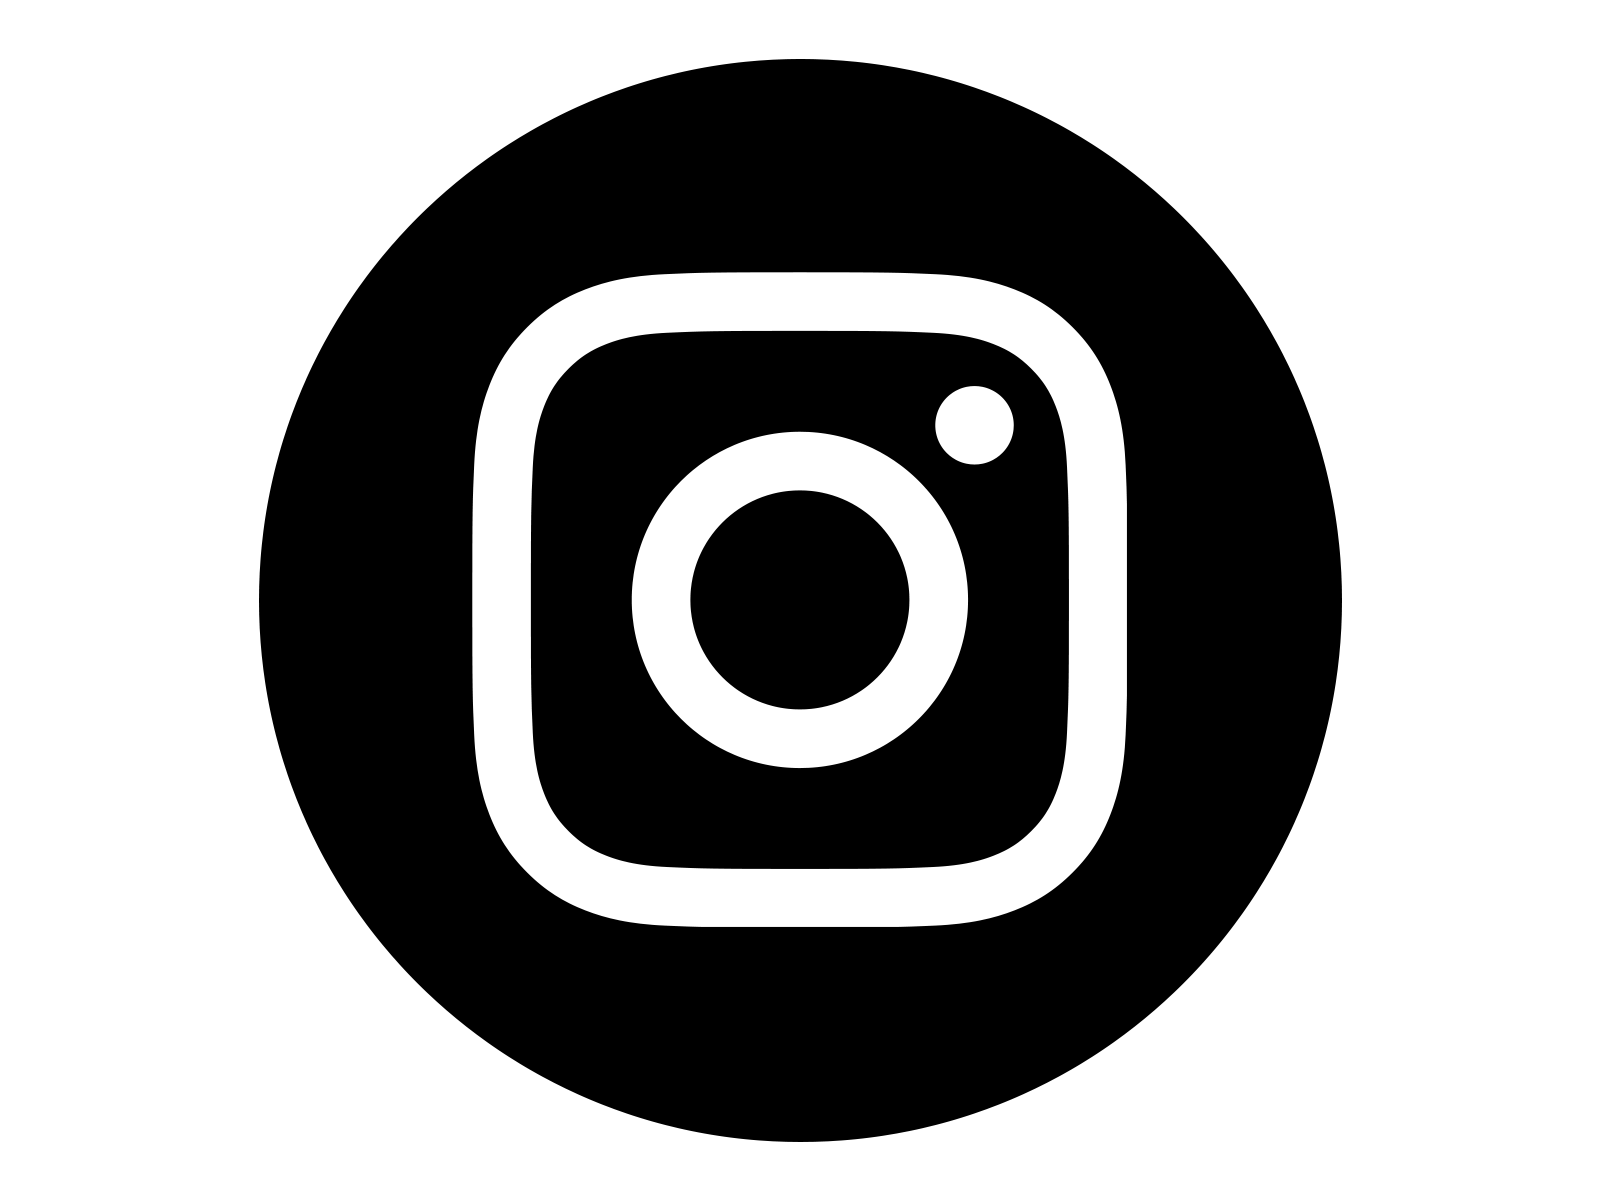 Instagram Icon White on Black Circle Objek gambar